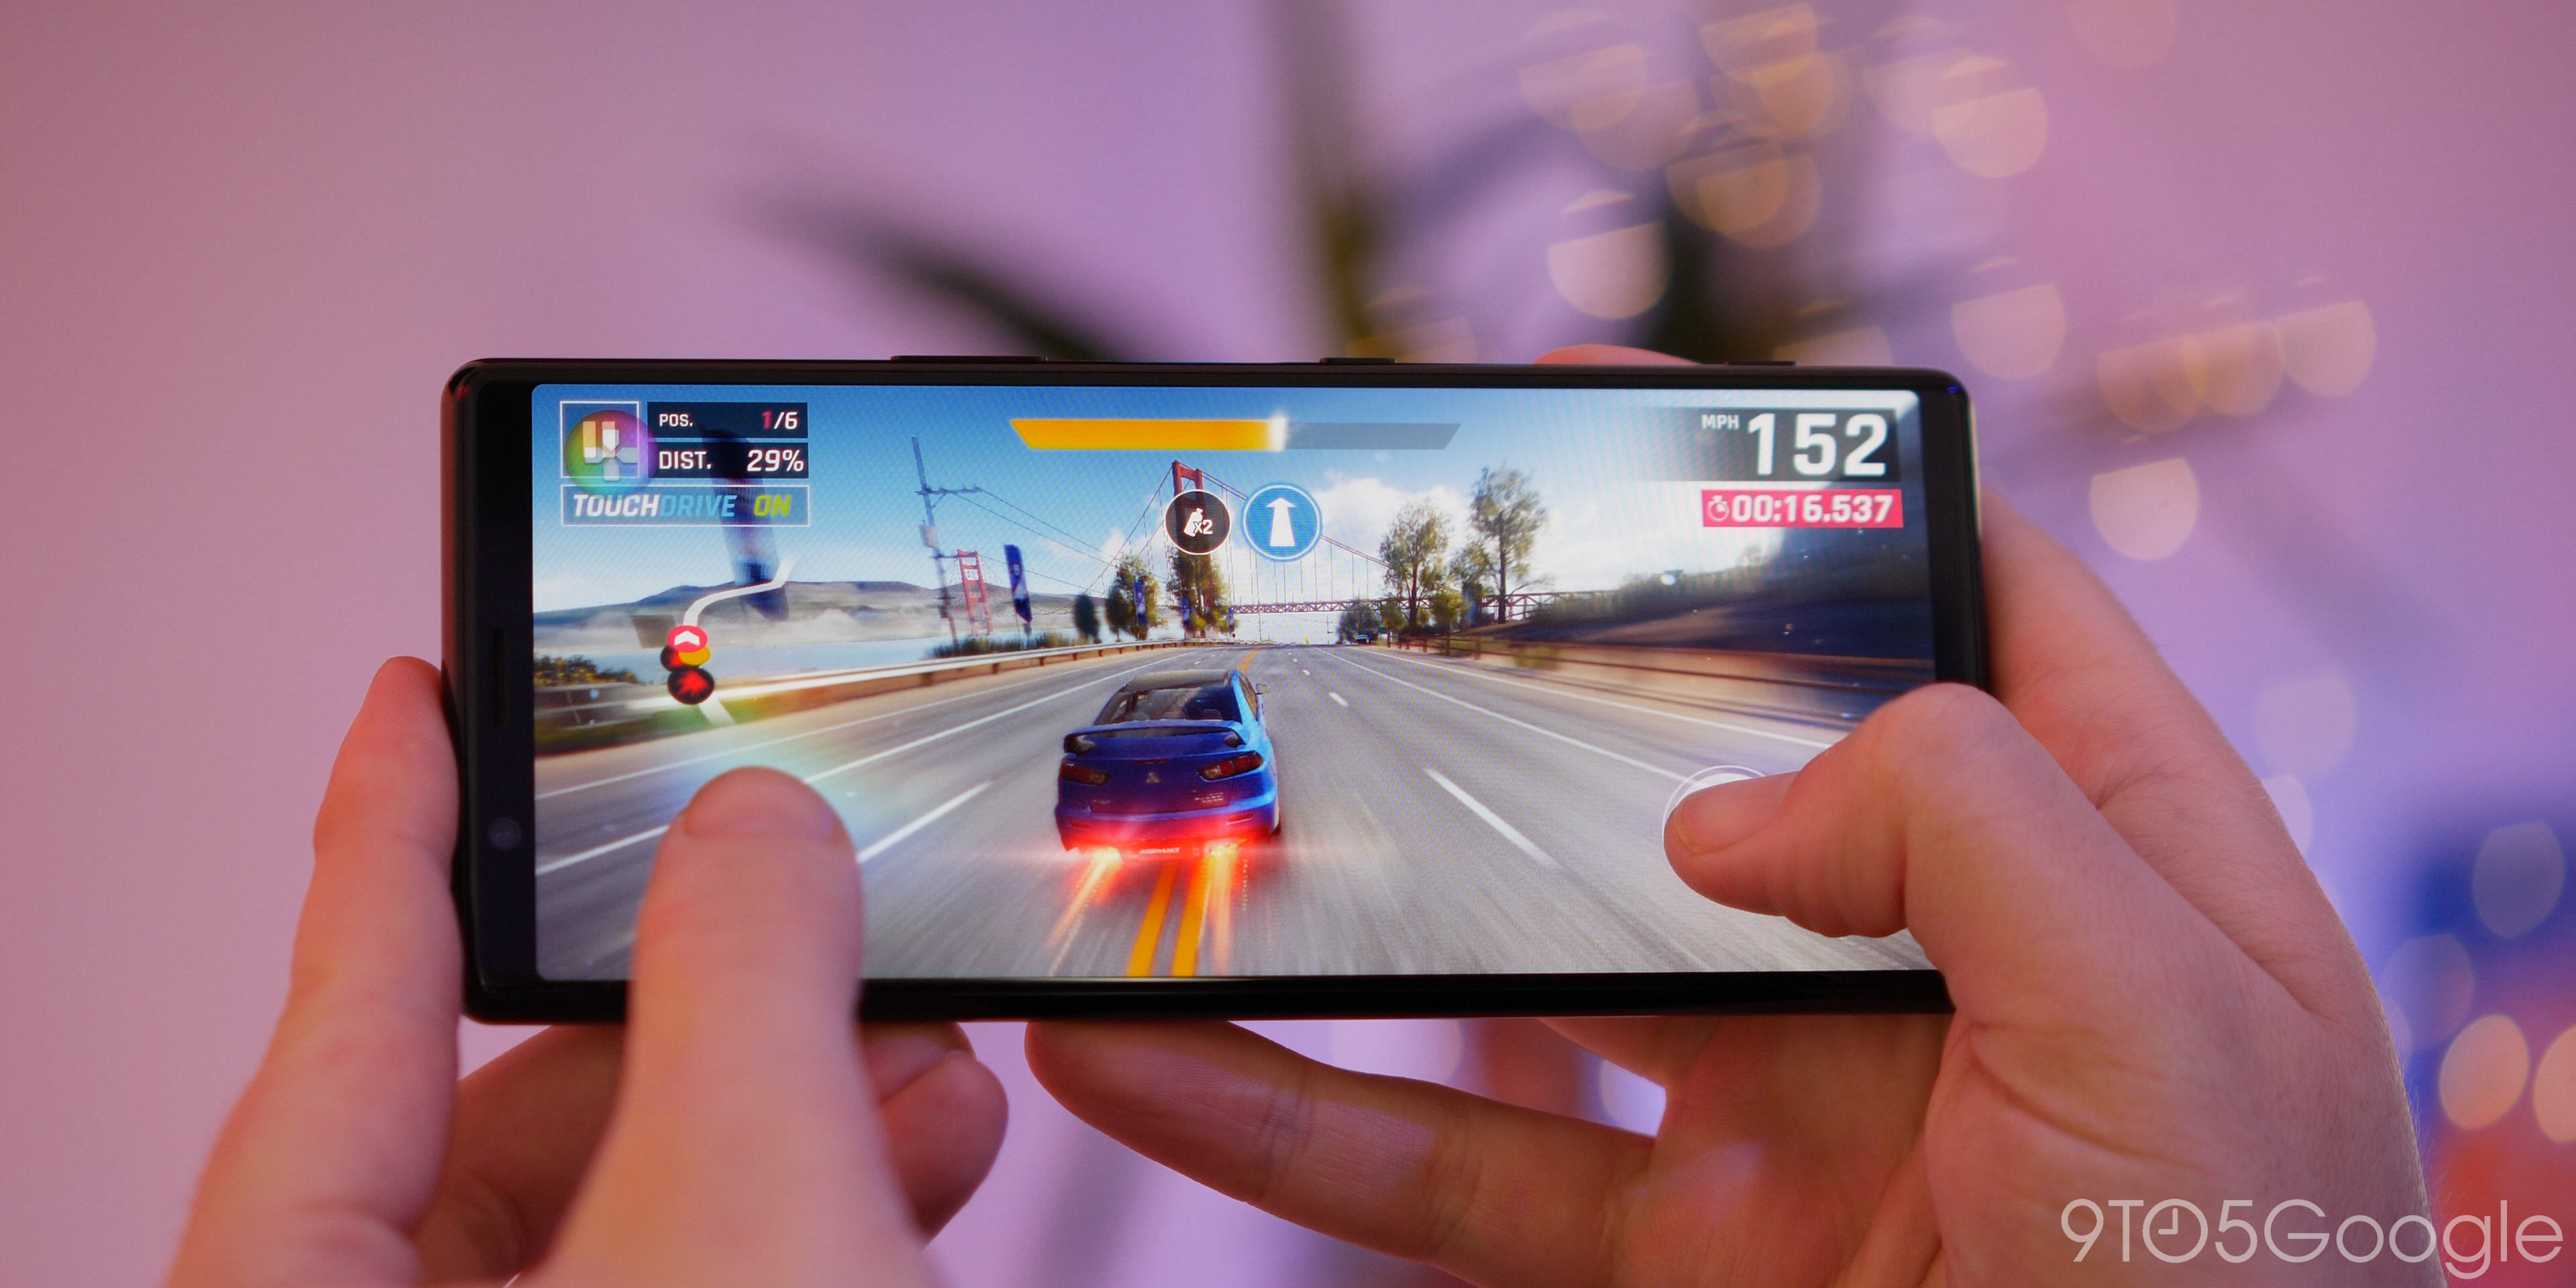 Sony Xperia 5 - Gaming performance